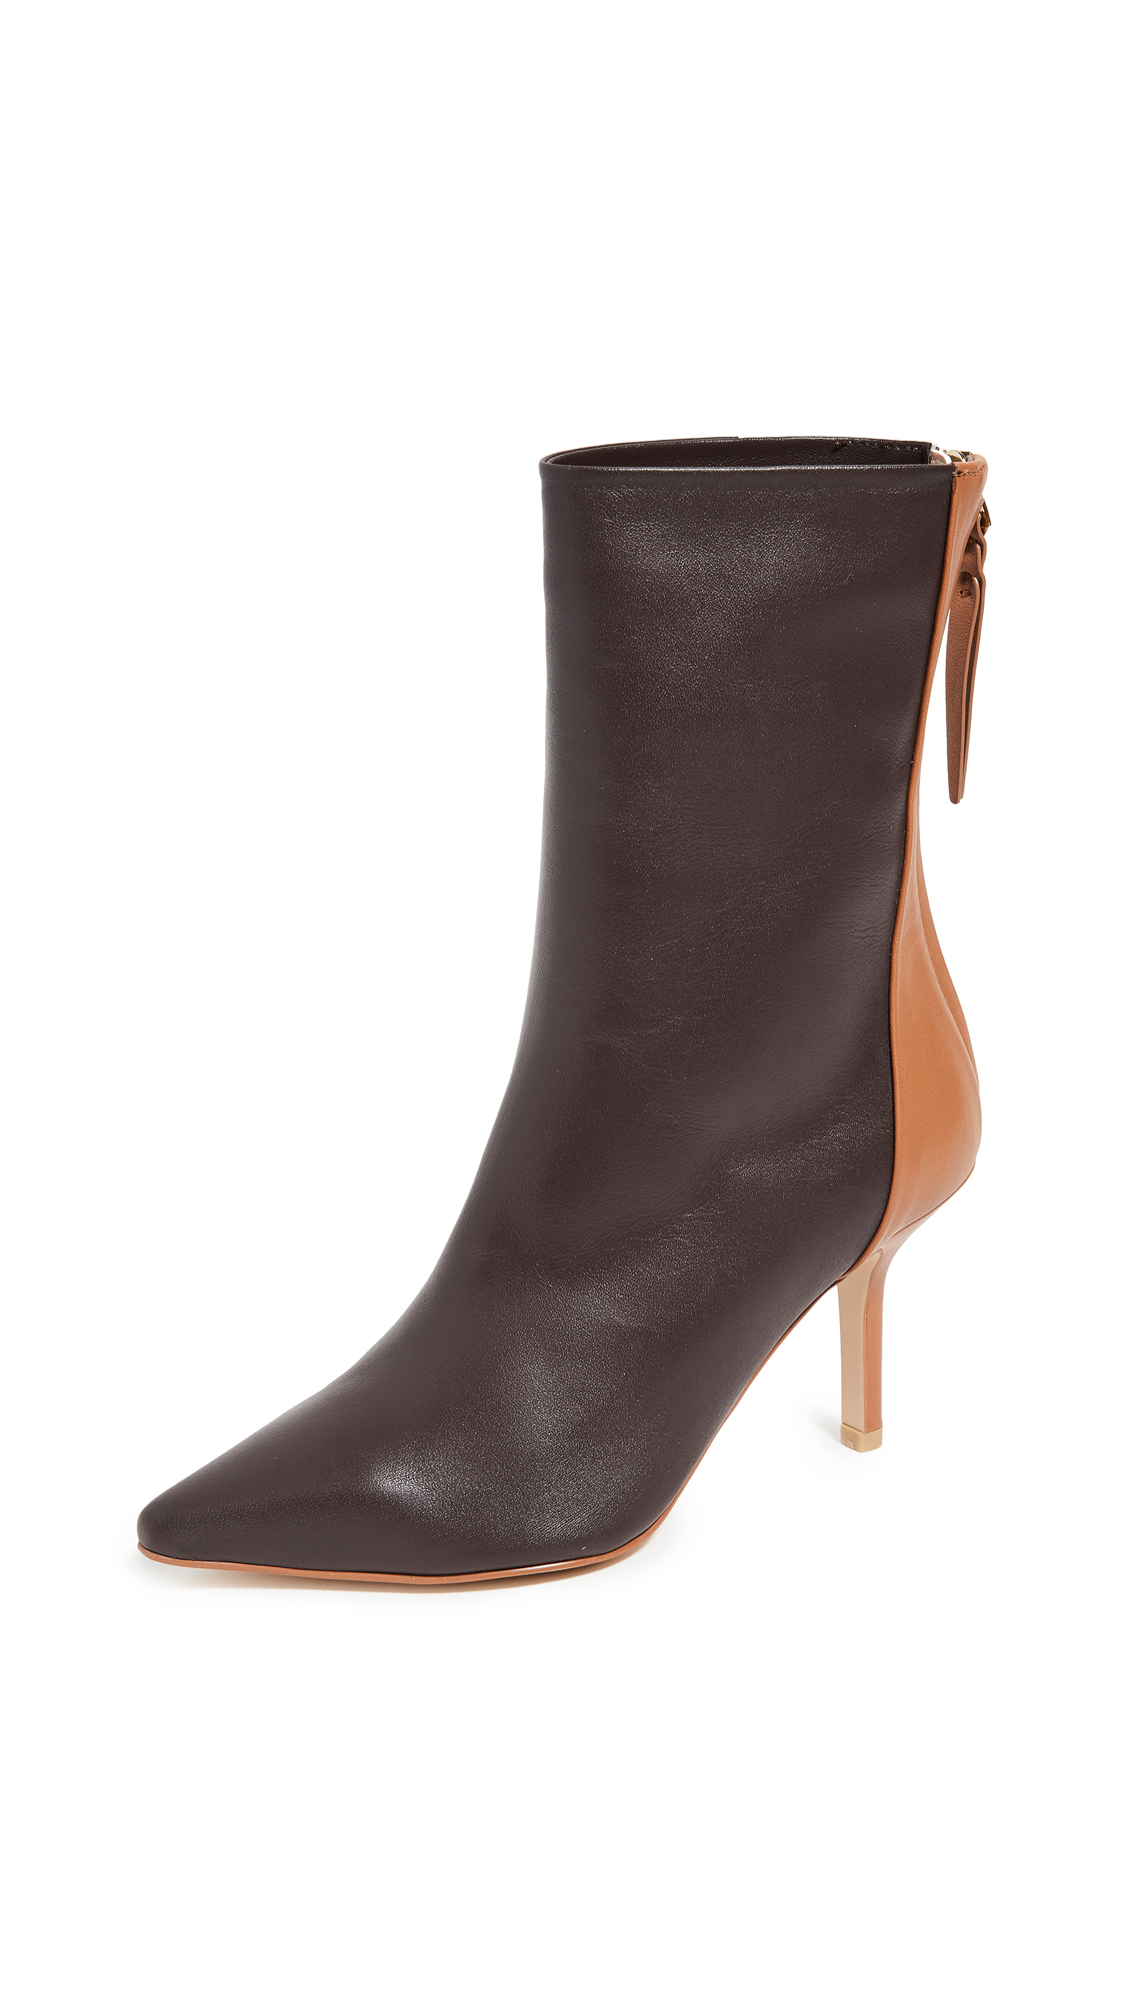 The Volon Dico Ankle Booties In Chocolate